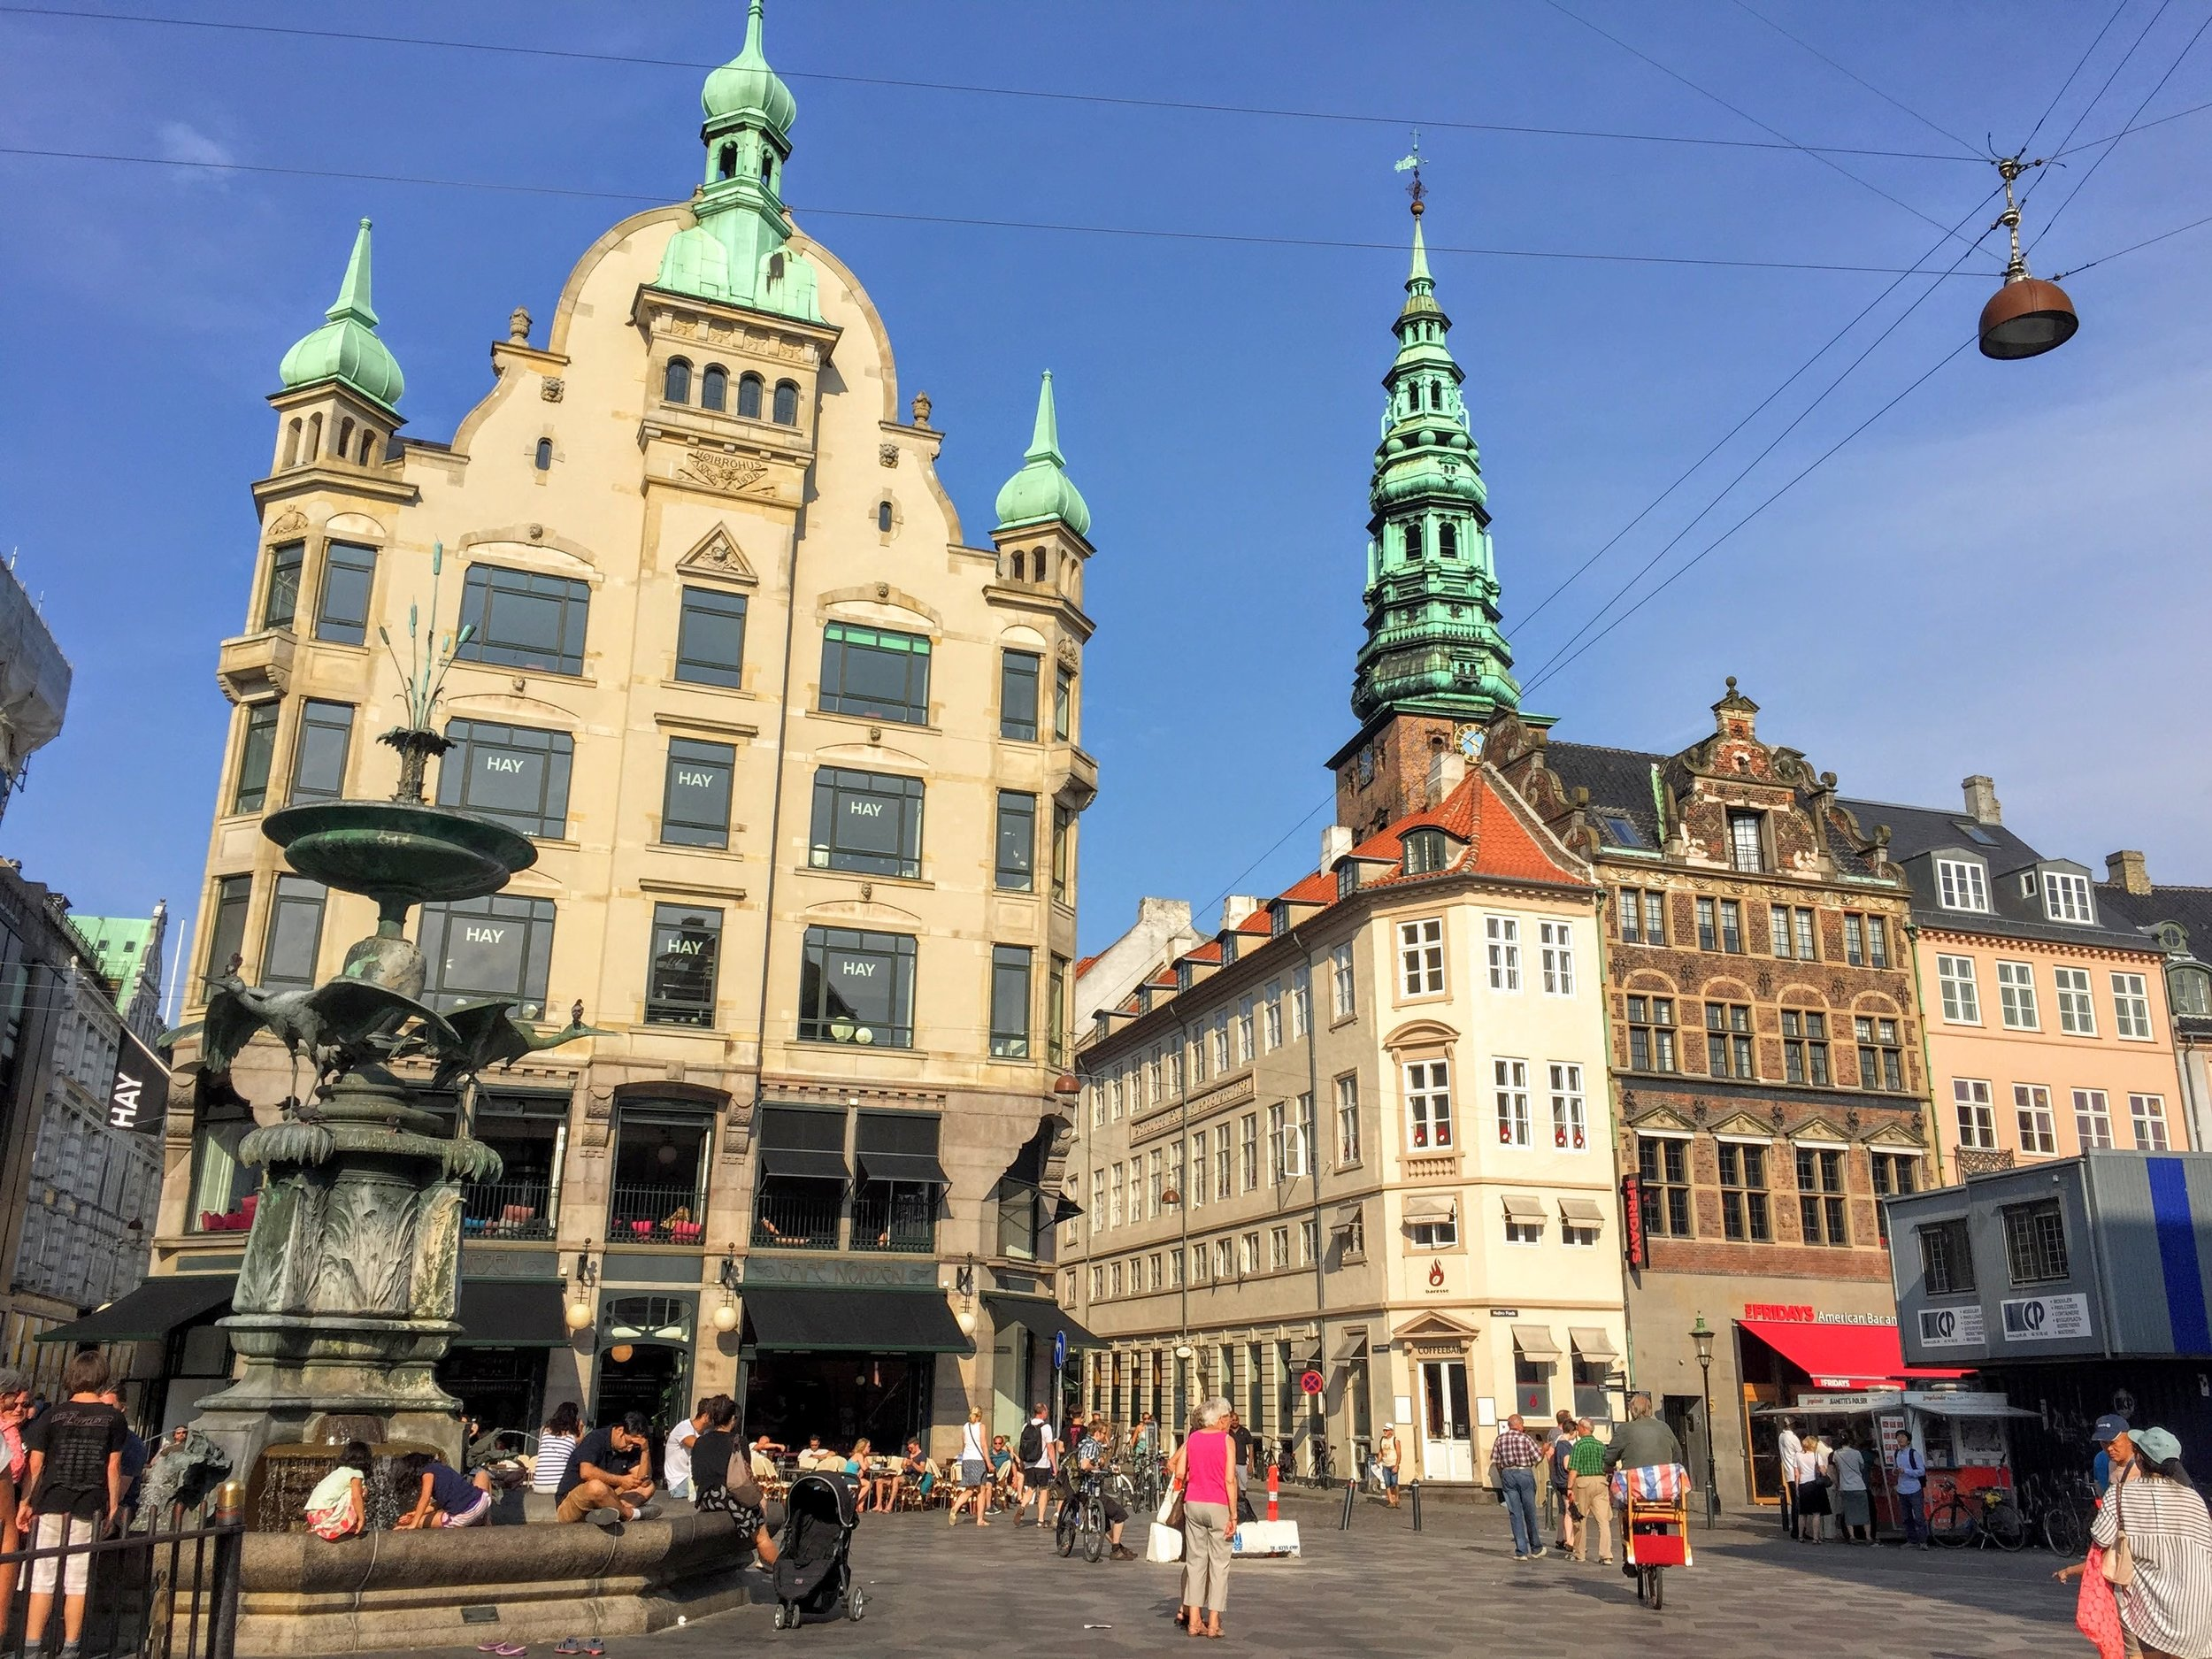 Some people watching and shopping on Strøget street // Copenhagen, Denmark